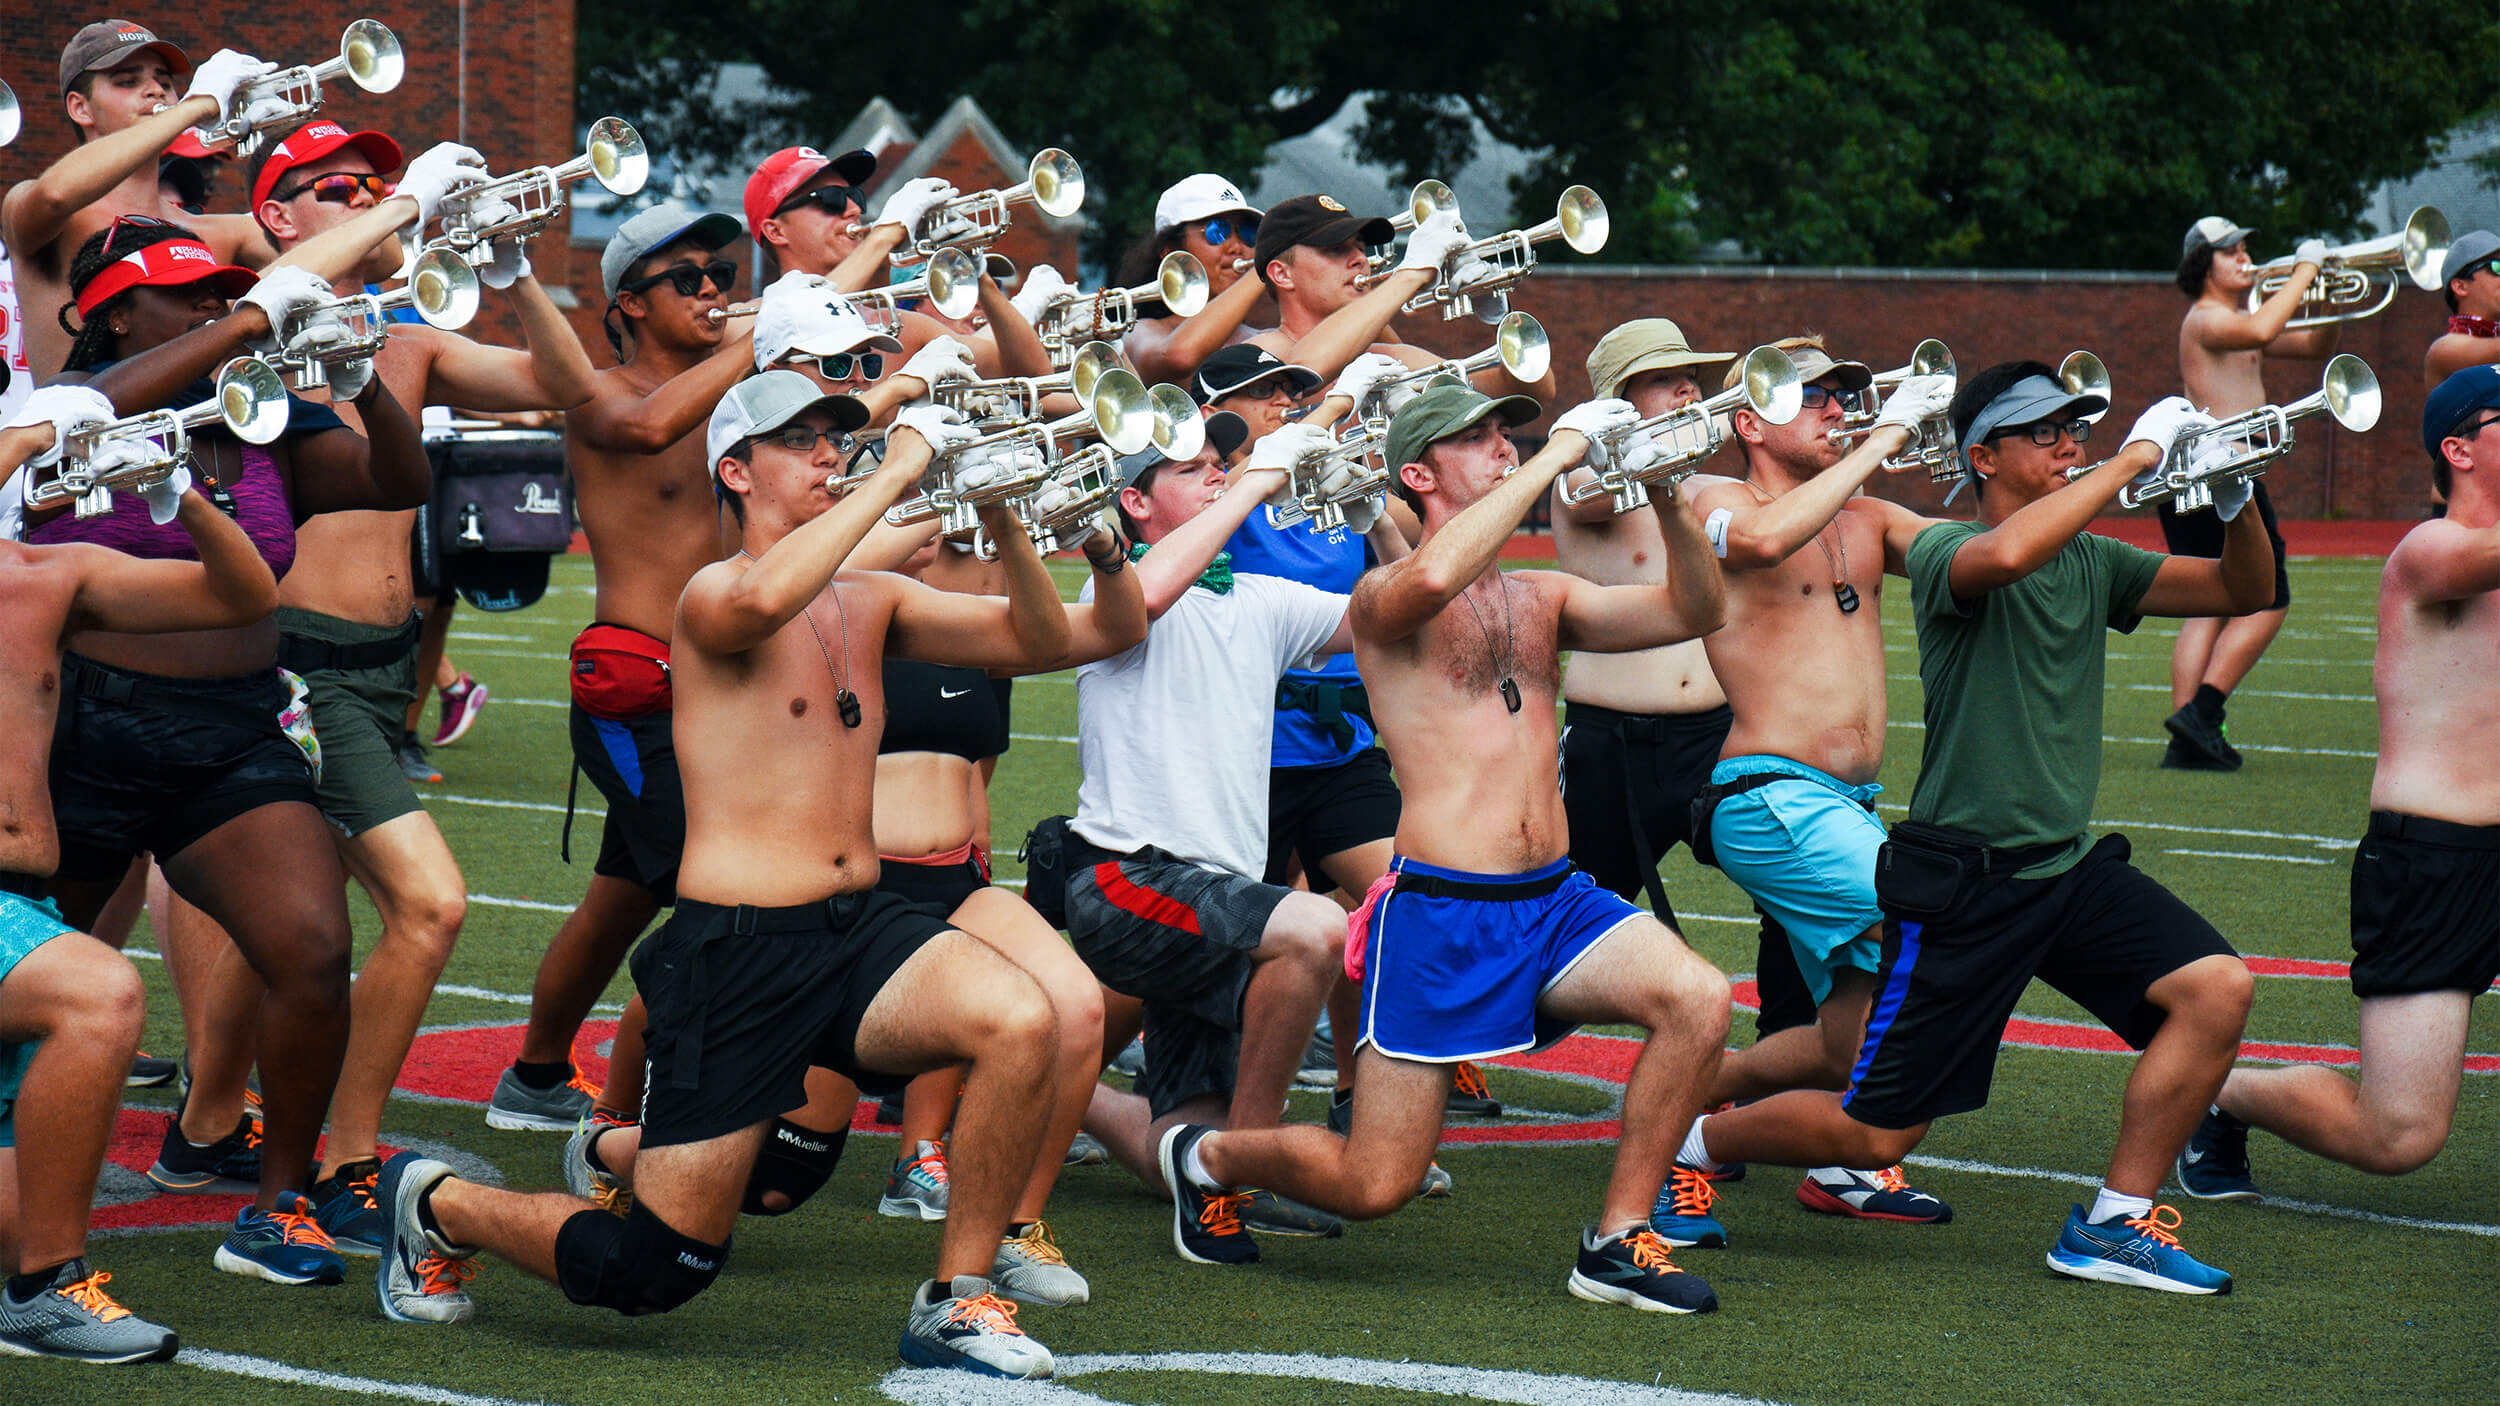 Regiment pushing toward payoff in unconventional summer preseason